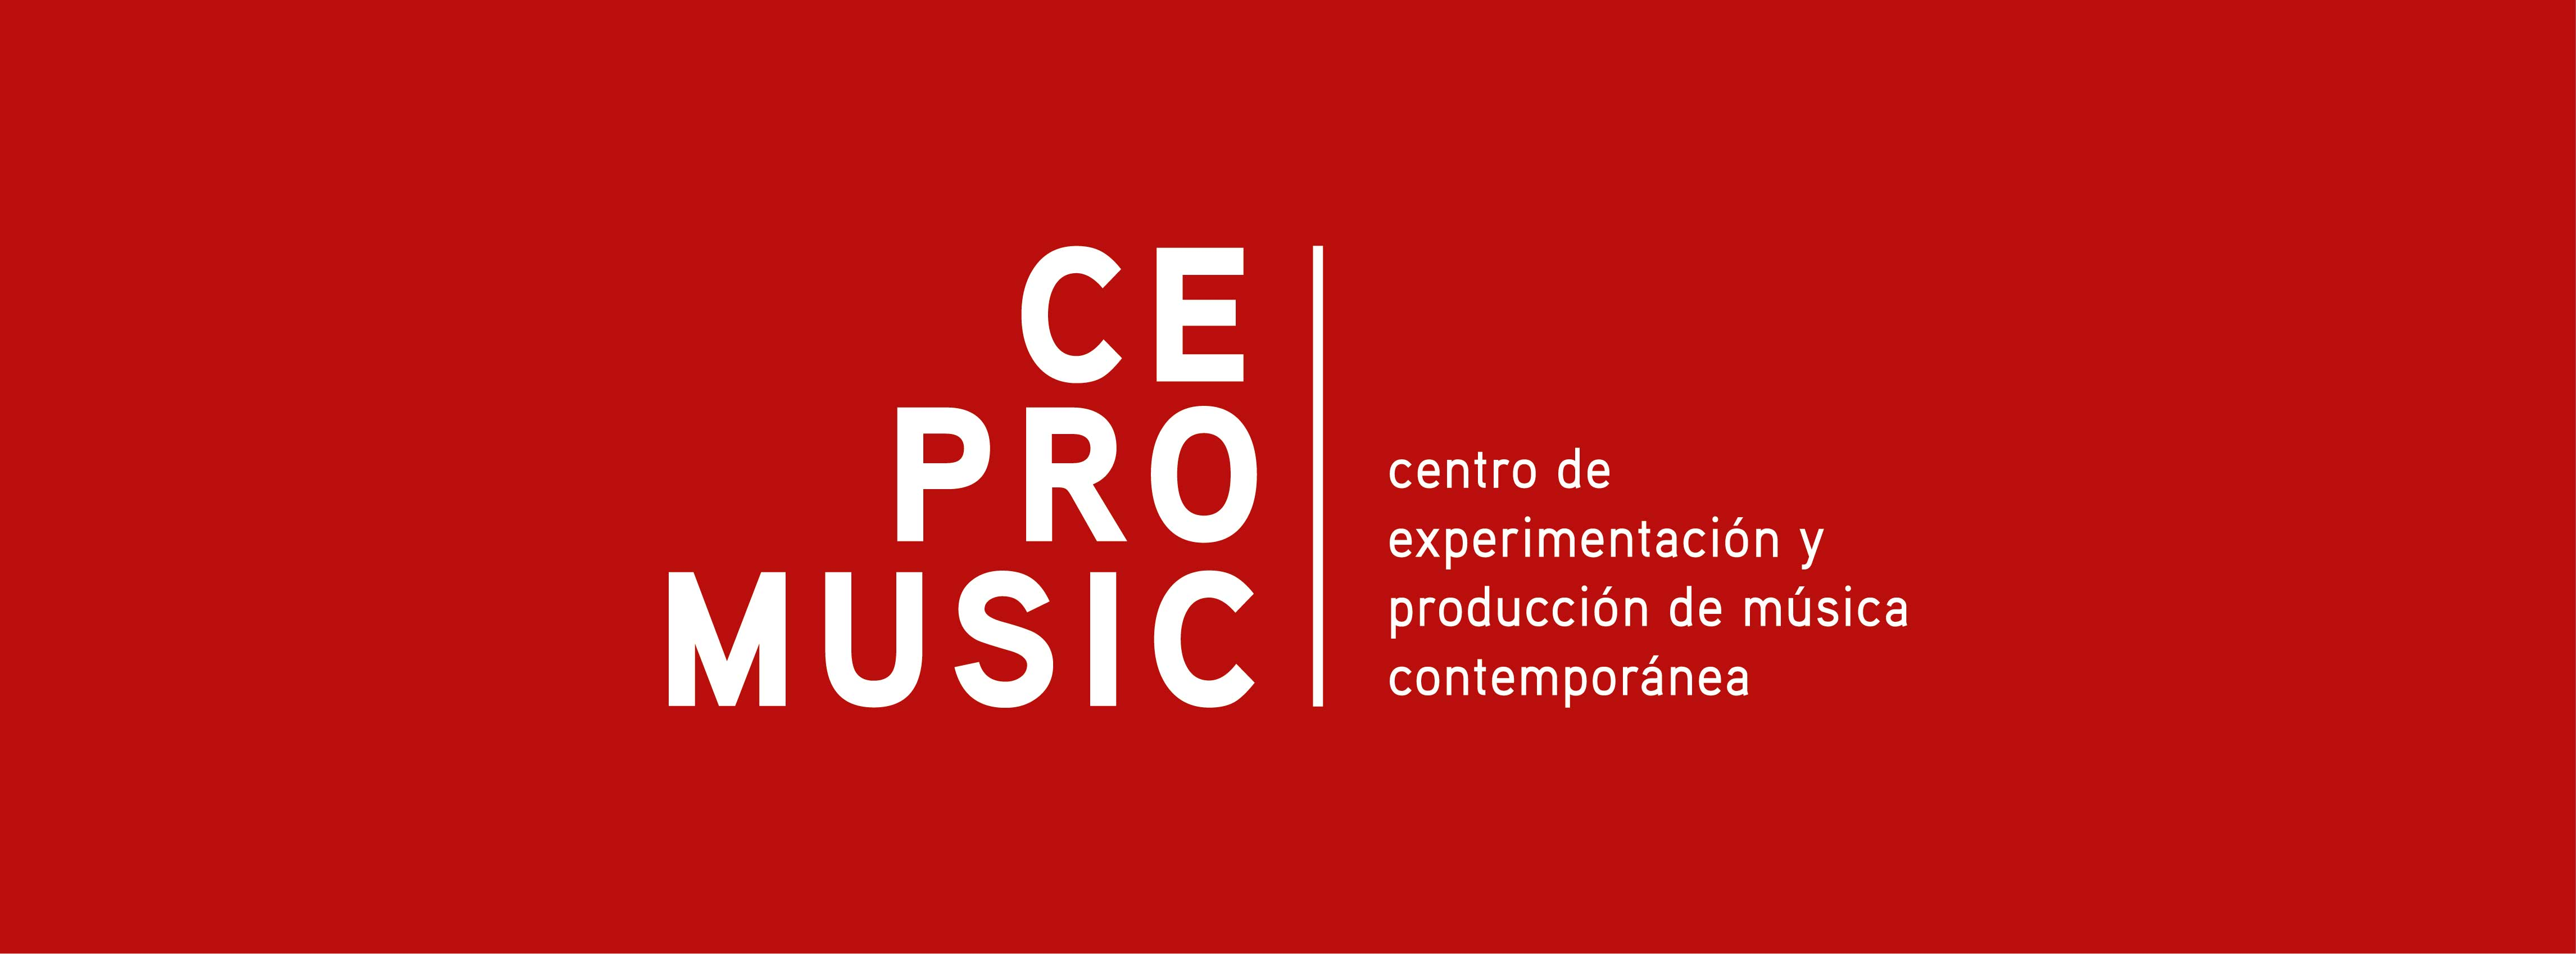 CEPROMUSIC-02.jpg